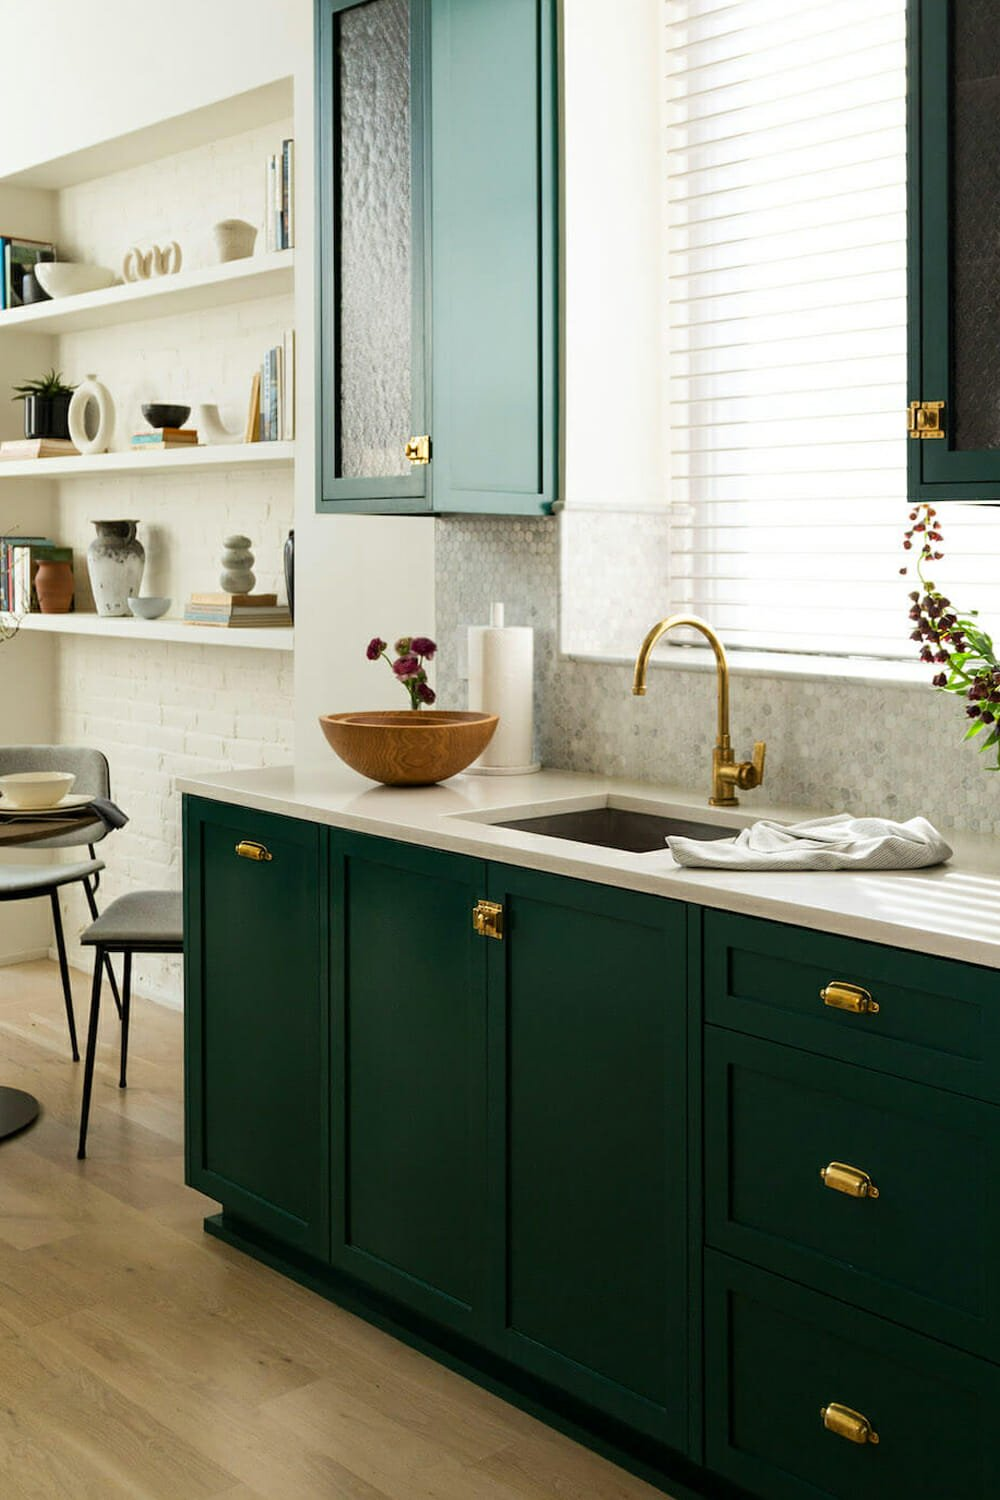 painted green cabinets